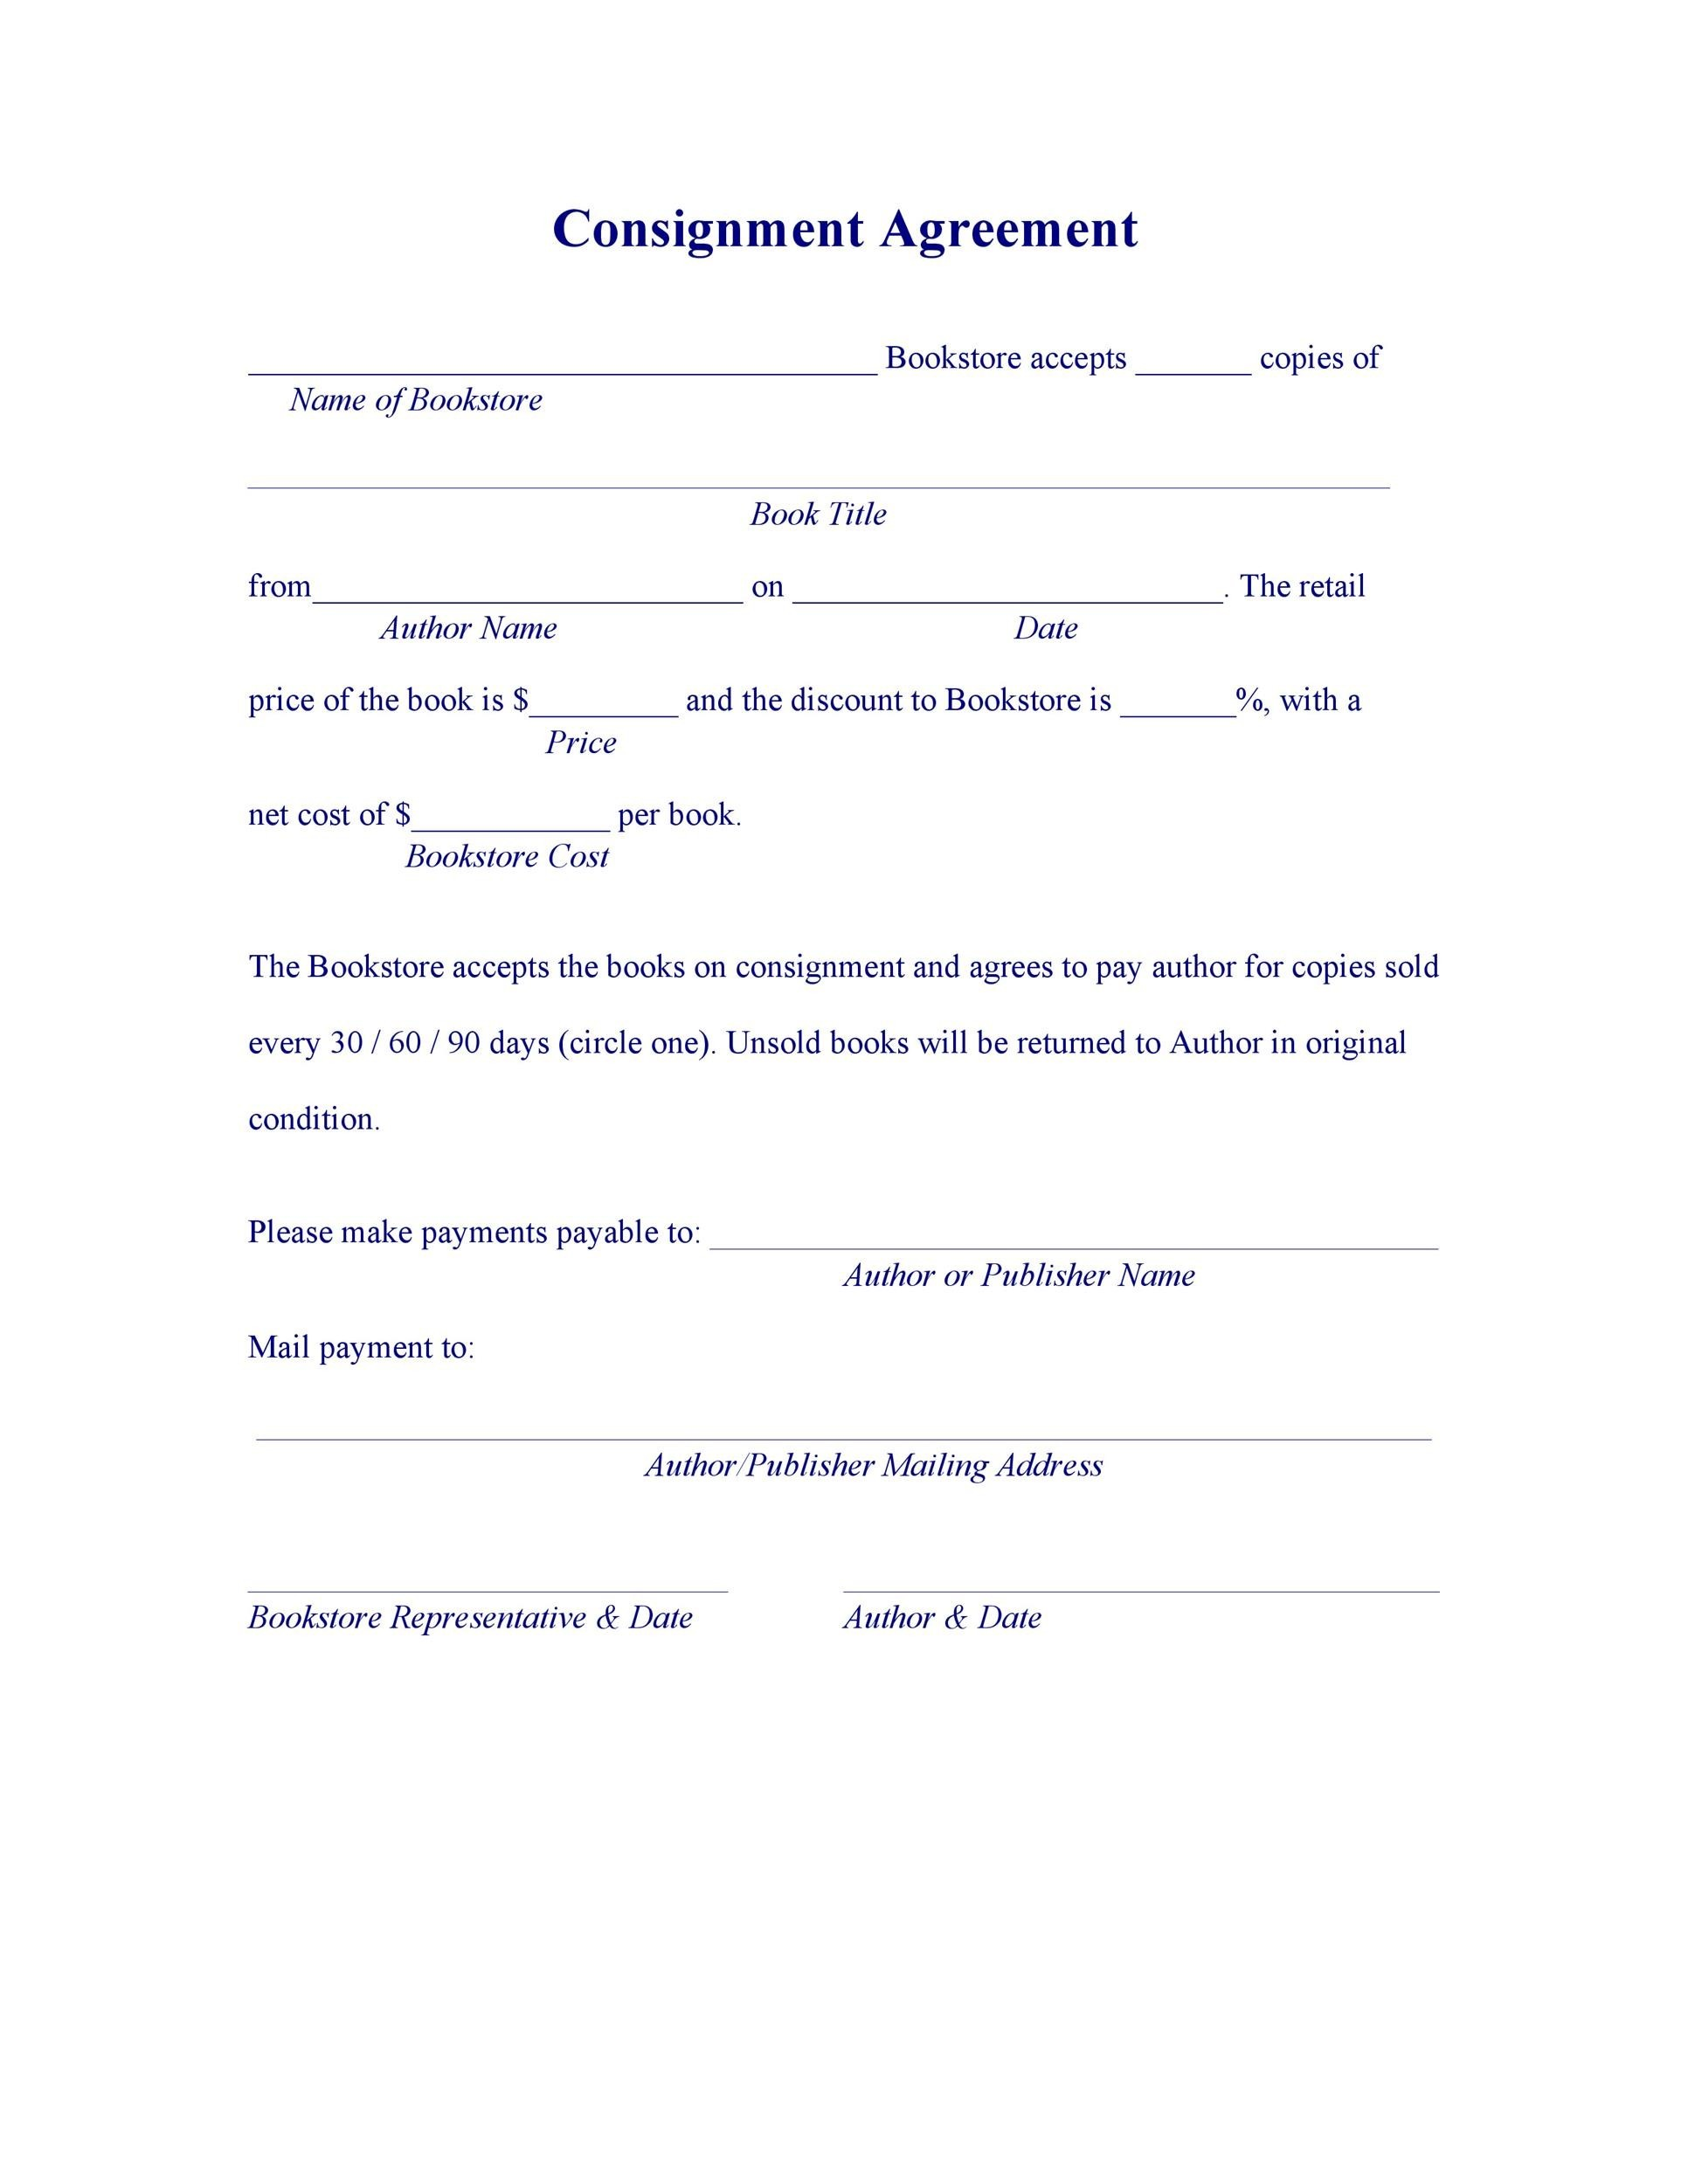 Free Consignment Agreement Template 35